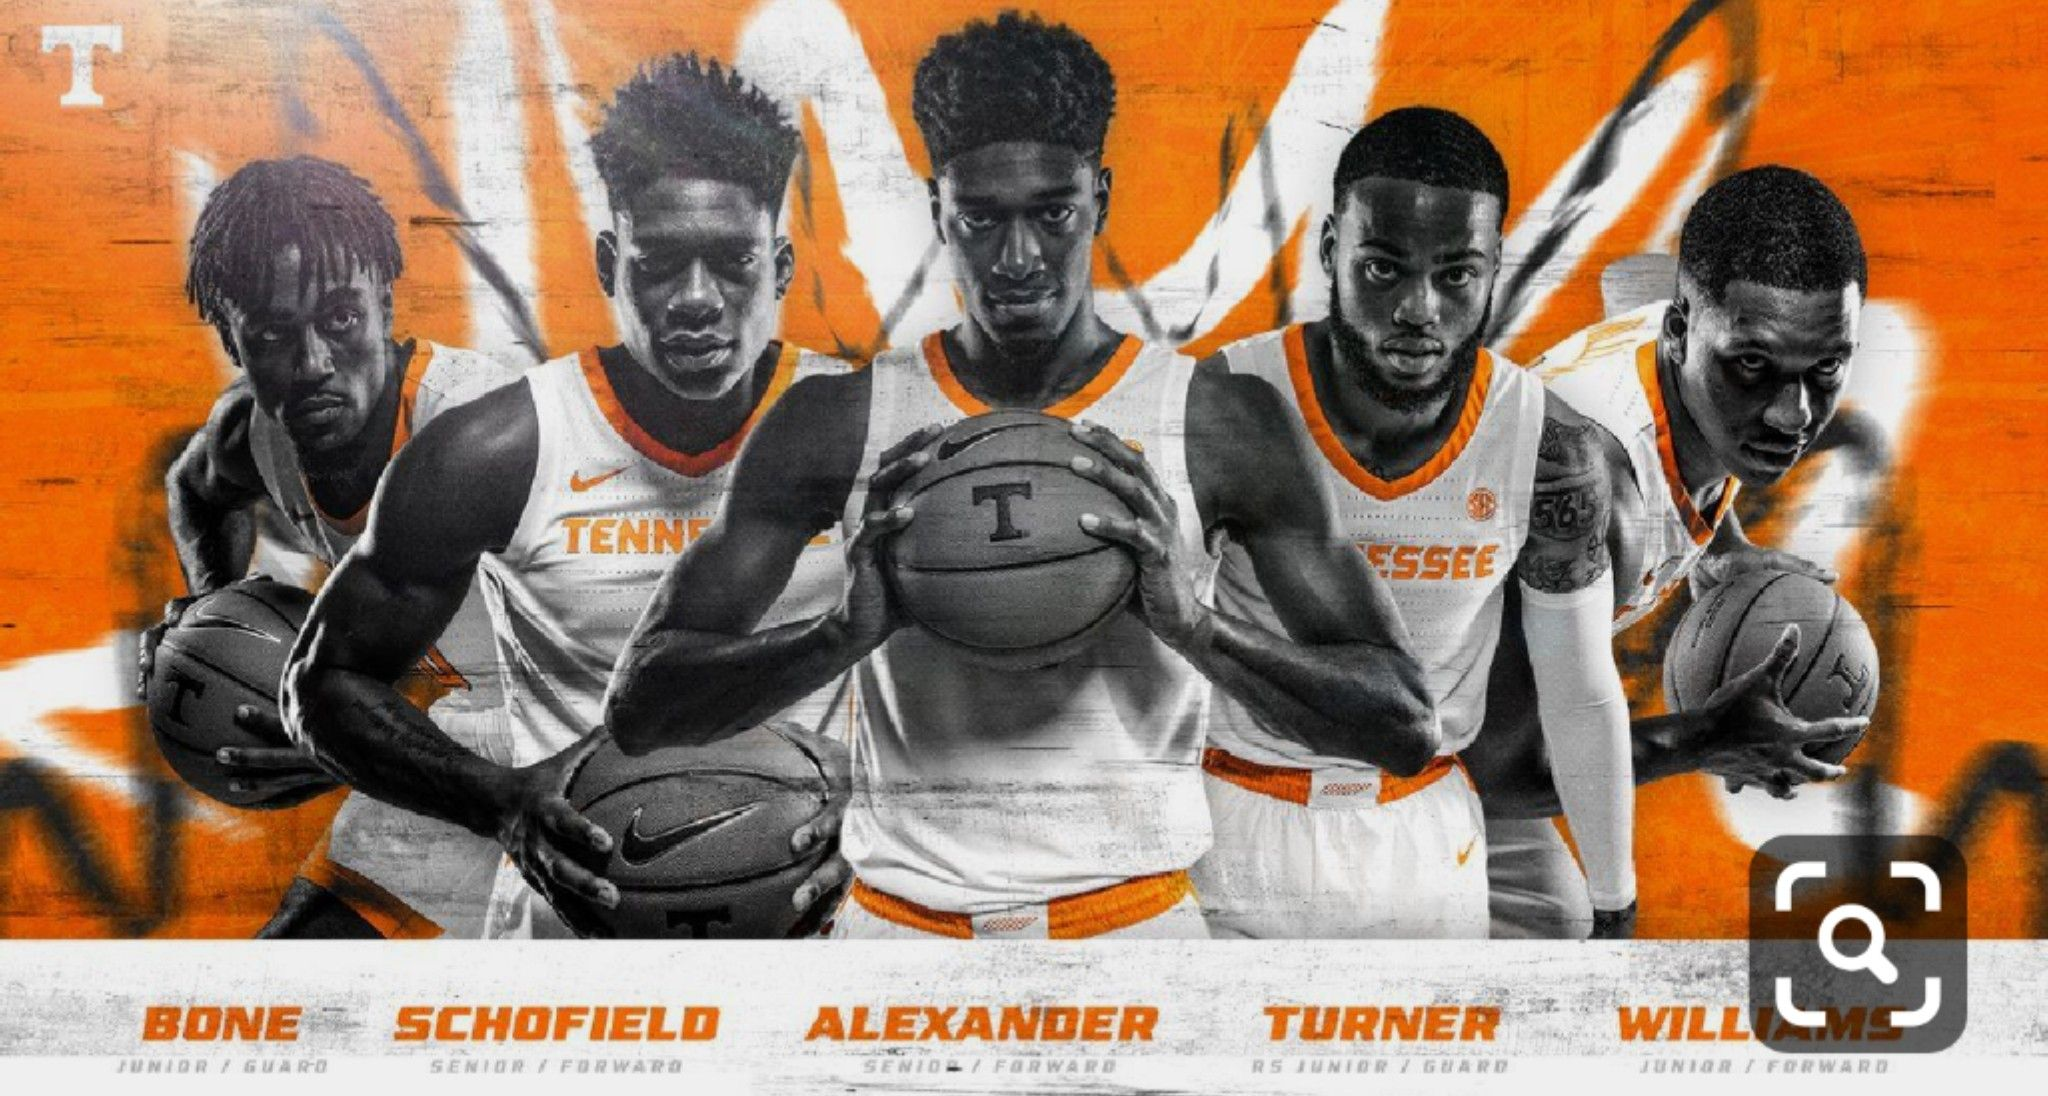 Pin by Carolyn Hicks on Rocky Top Tennessee, Vols